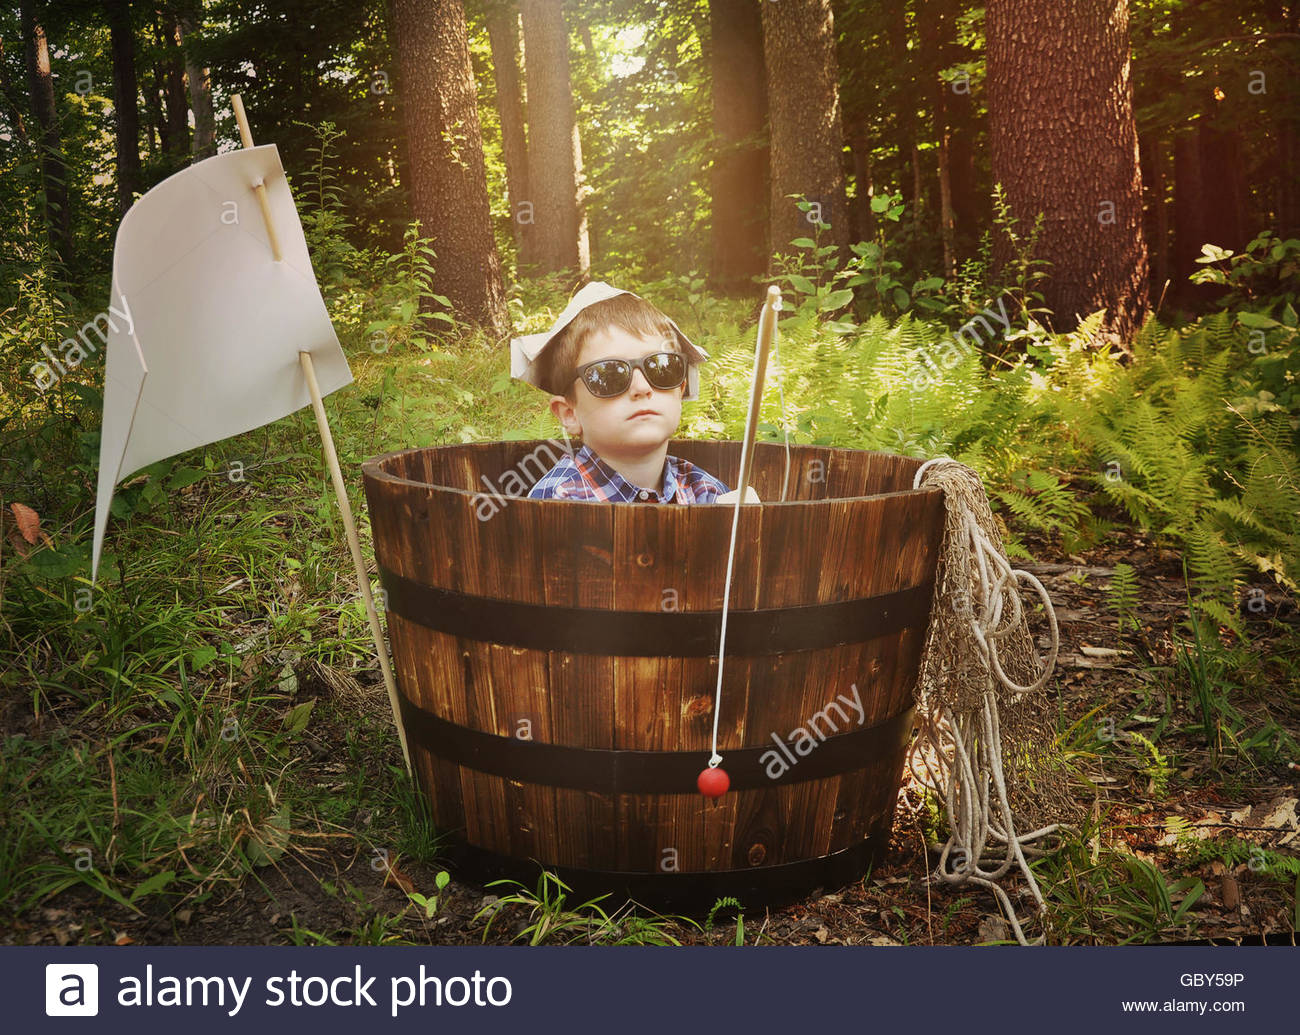 A young boy is relaxing in a wooden boat barrel with a fishing pole toy in the woods for a imagination, activity - Stock Image